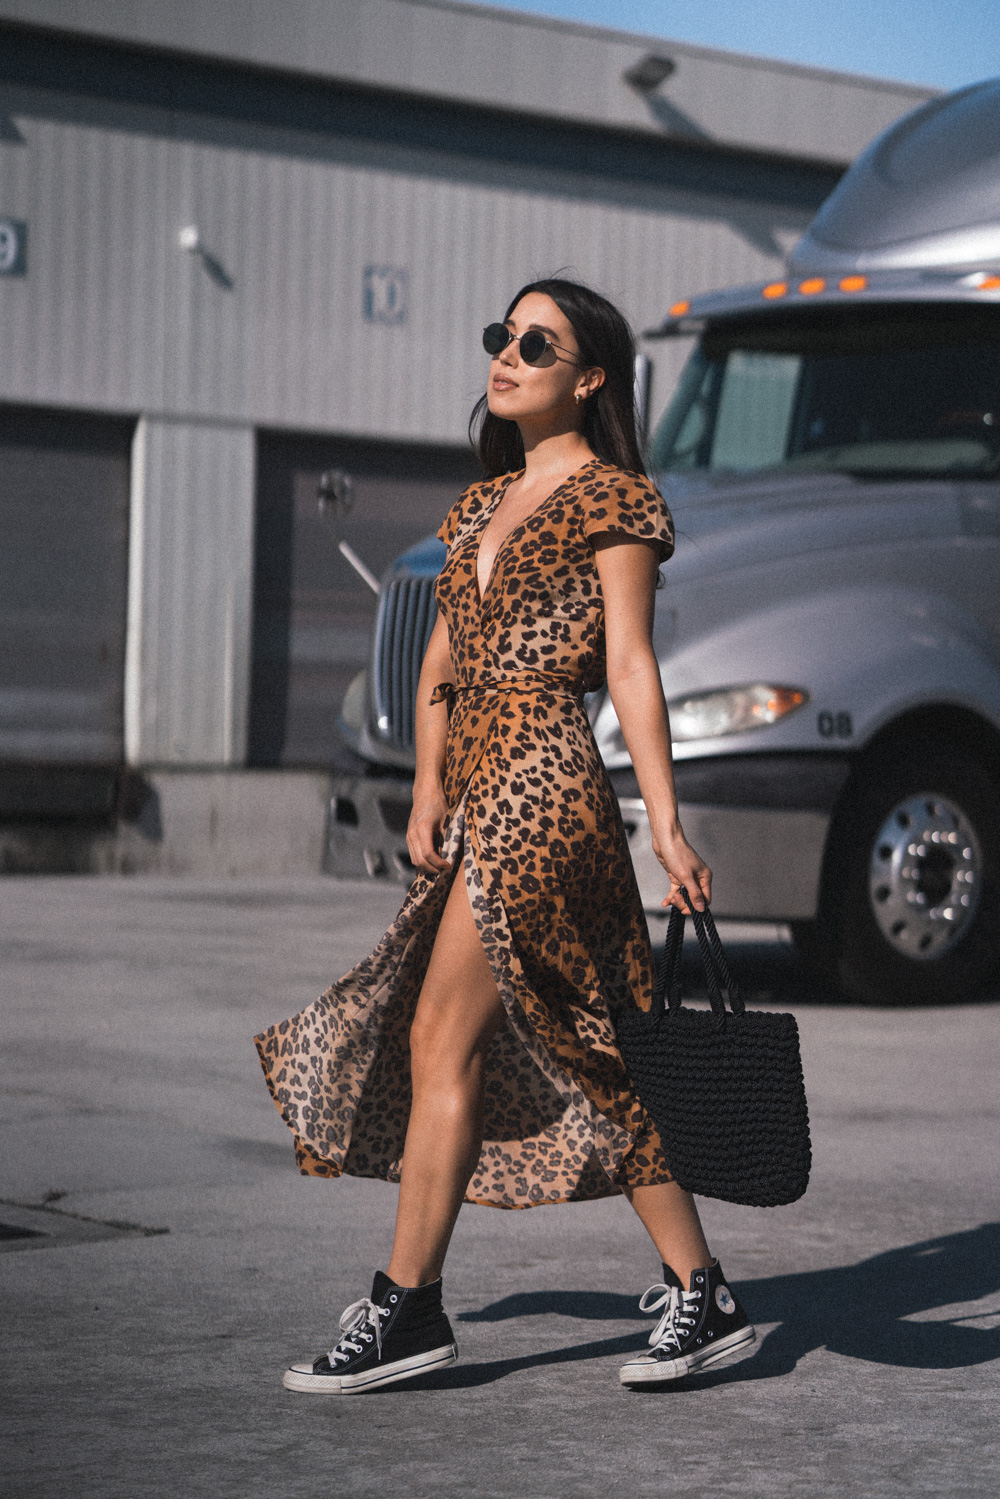 LOVE OR MONEY by Emily Tong wearing Other Stories wrap dress in leopard print and sneakers